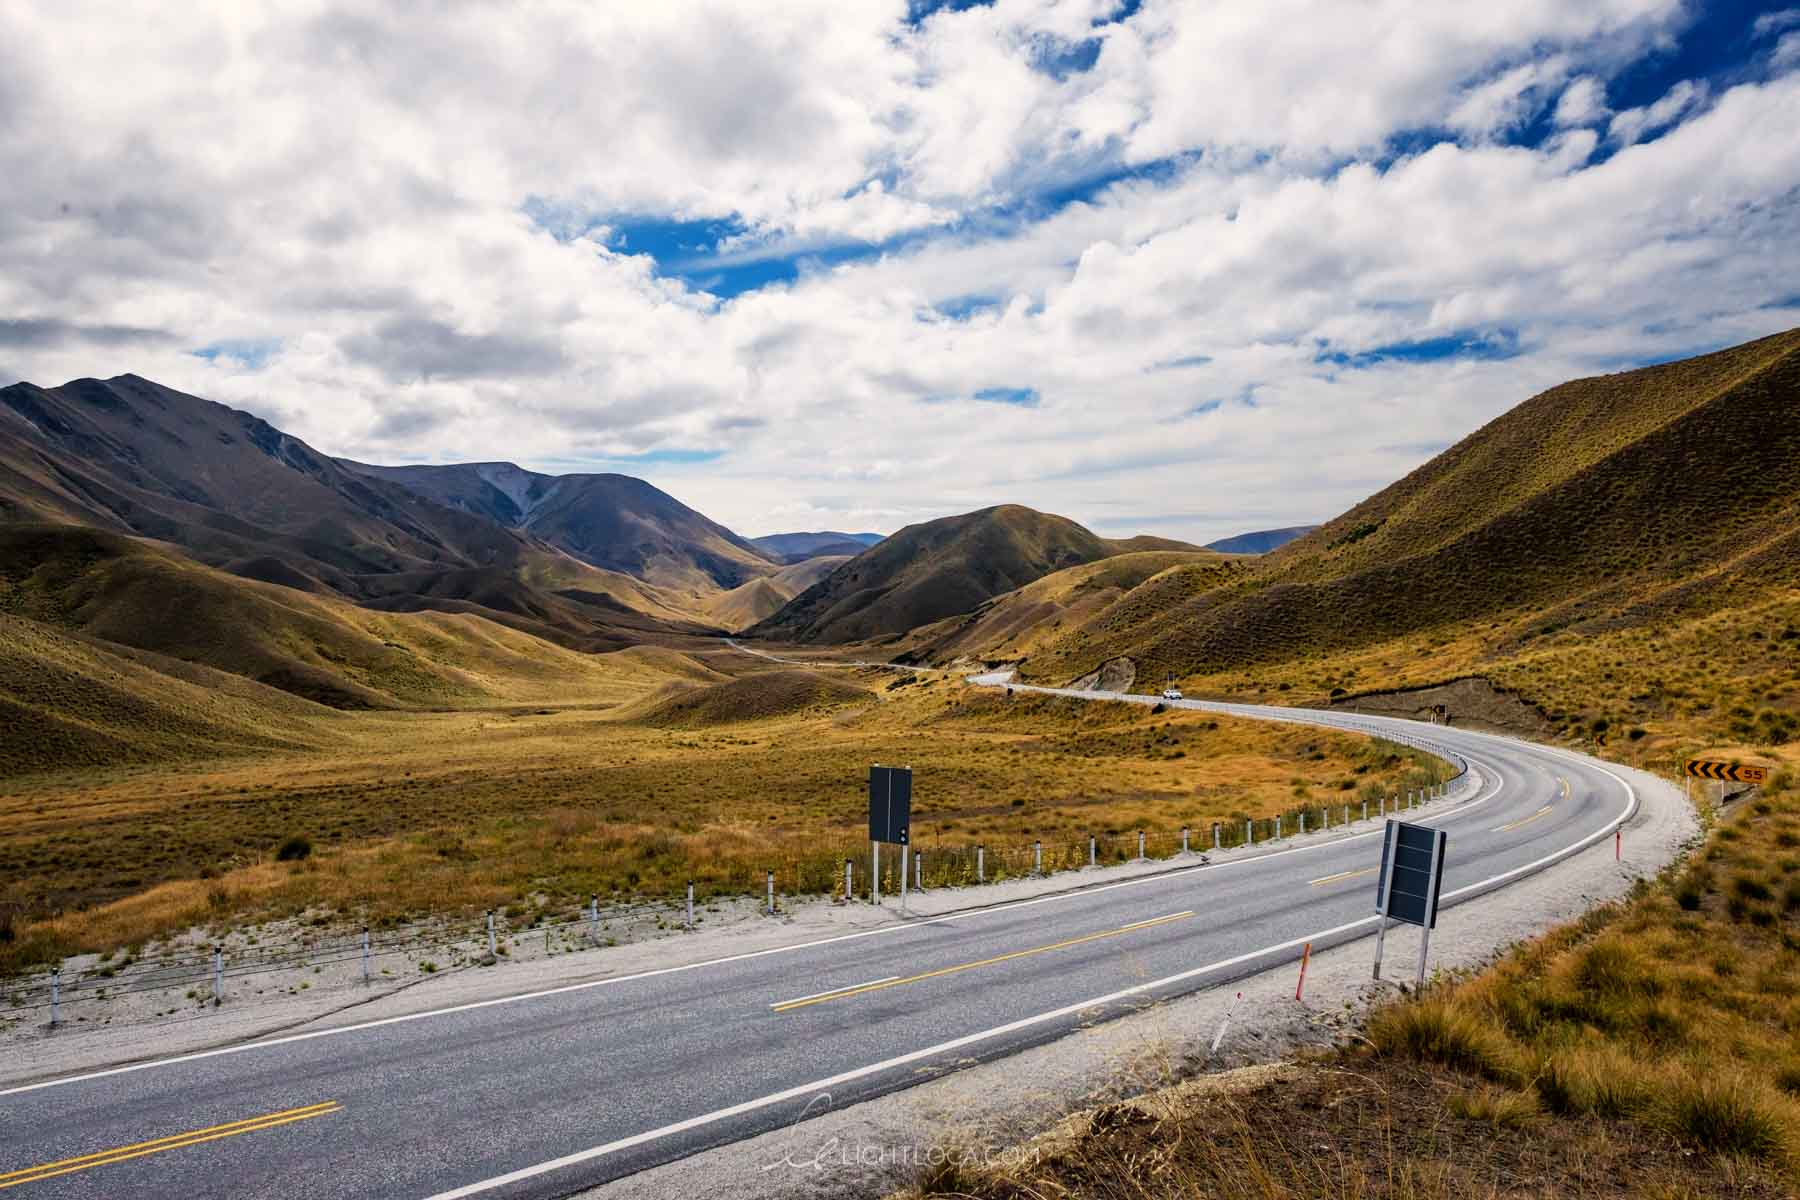 Curved road on the way to Wanaka New Zealand